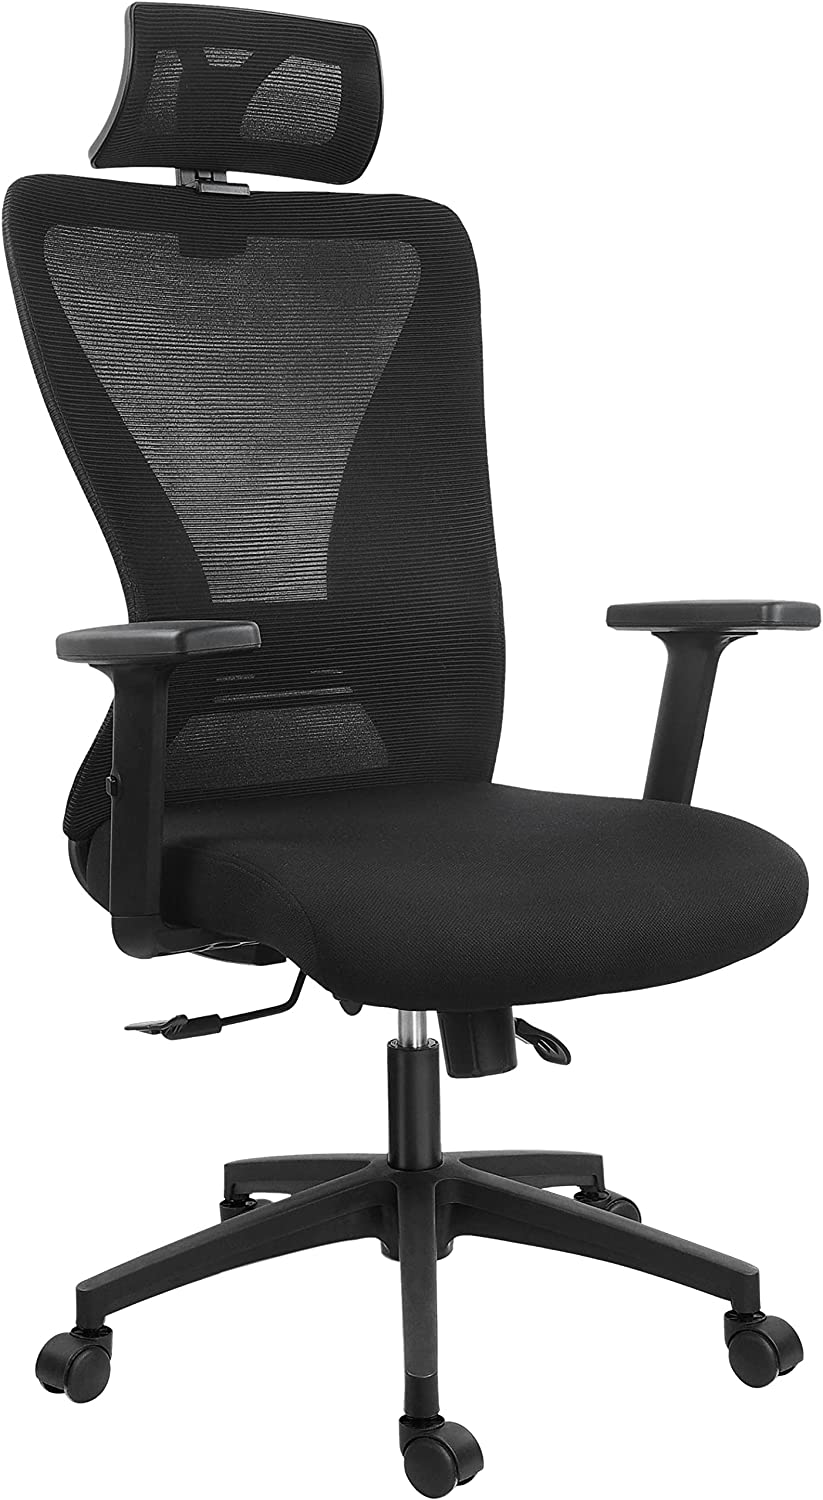 Ergonomic High Back Office Chair Desk Chicago Mall with Home Challenge the lowest price of Japan ☆ - Chairs